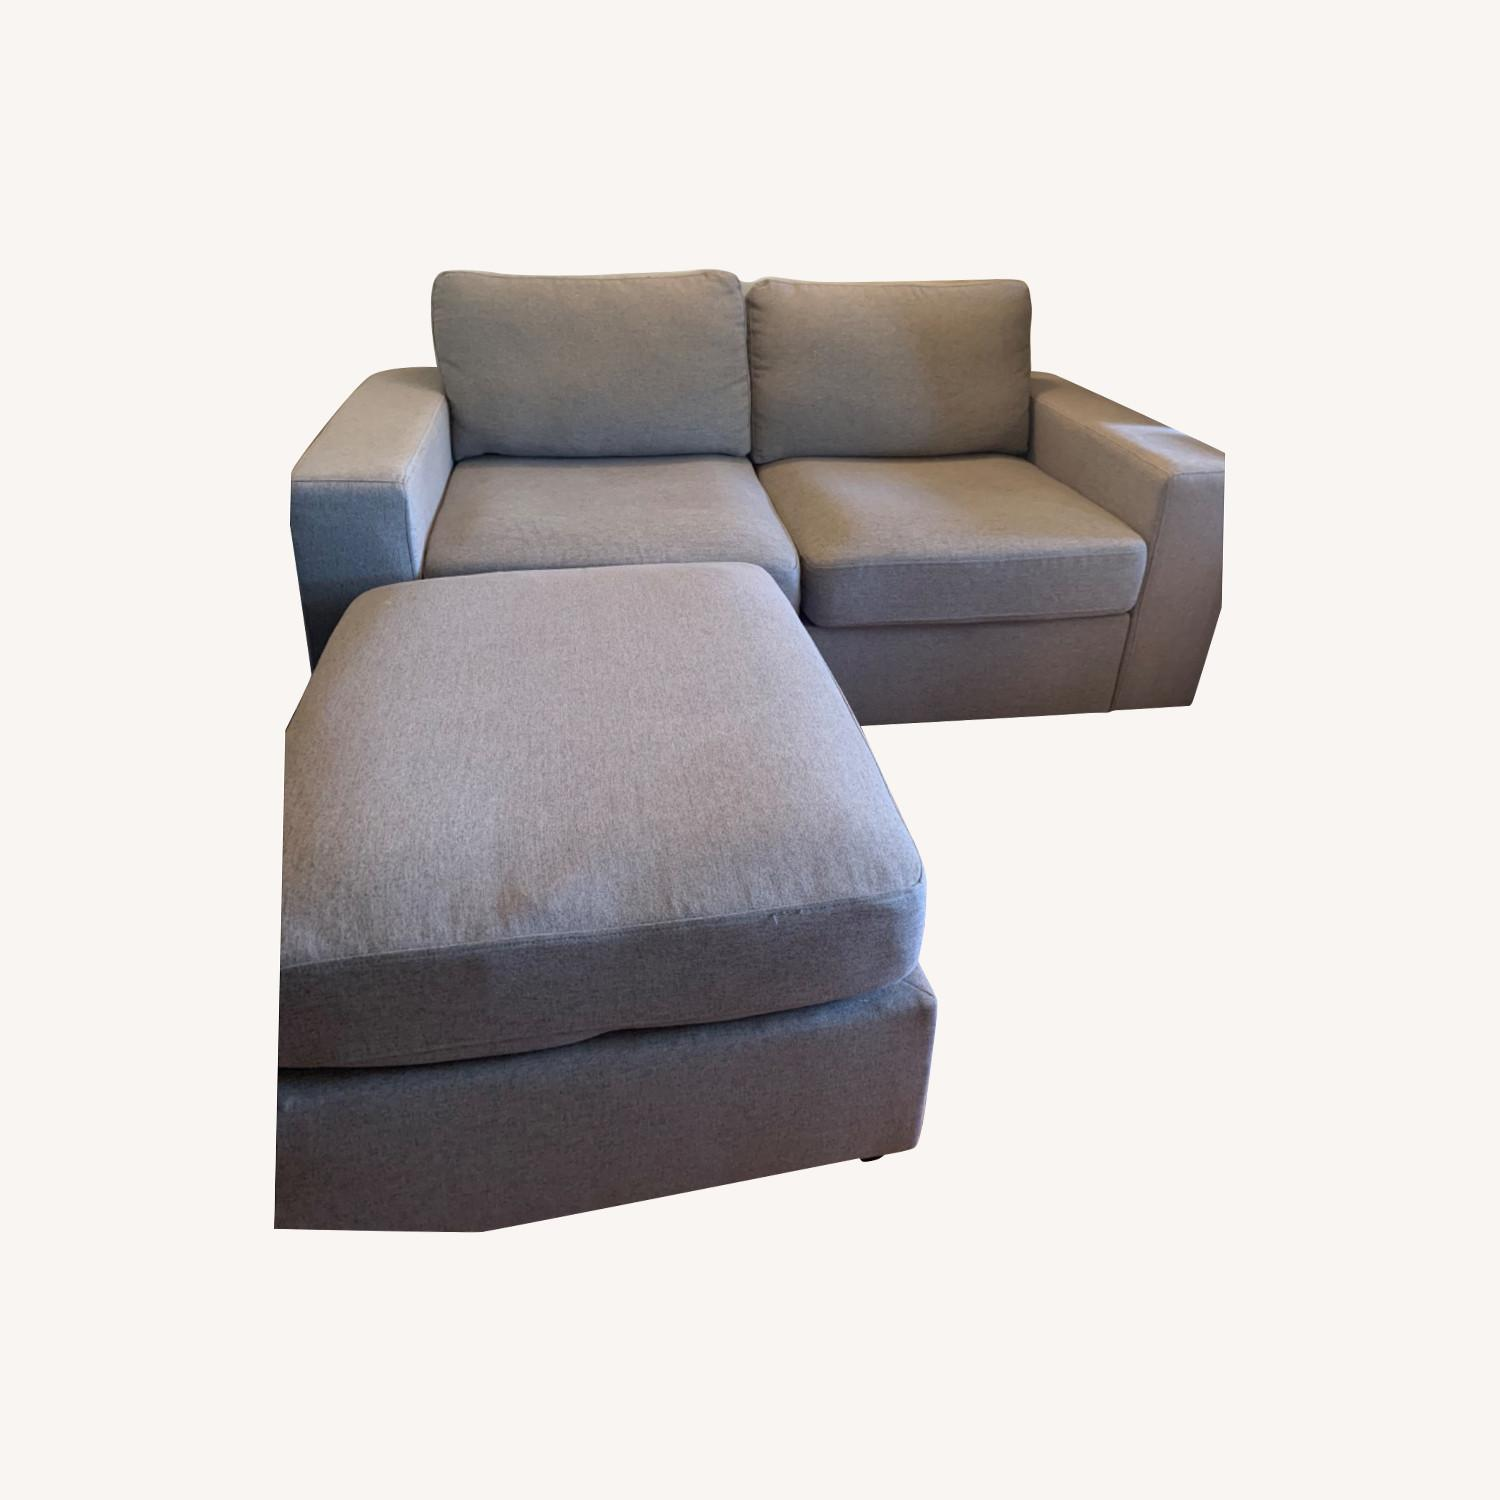 Wayfair Gosnell Reversible Loveseat & Ottoman - image-0